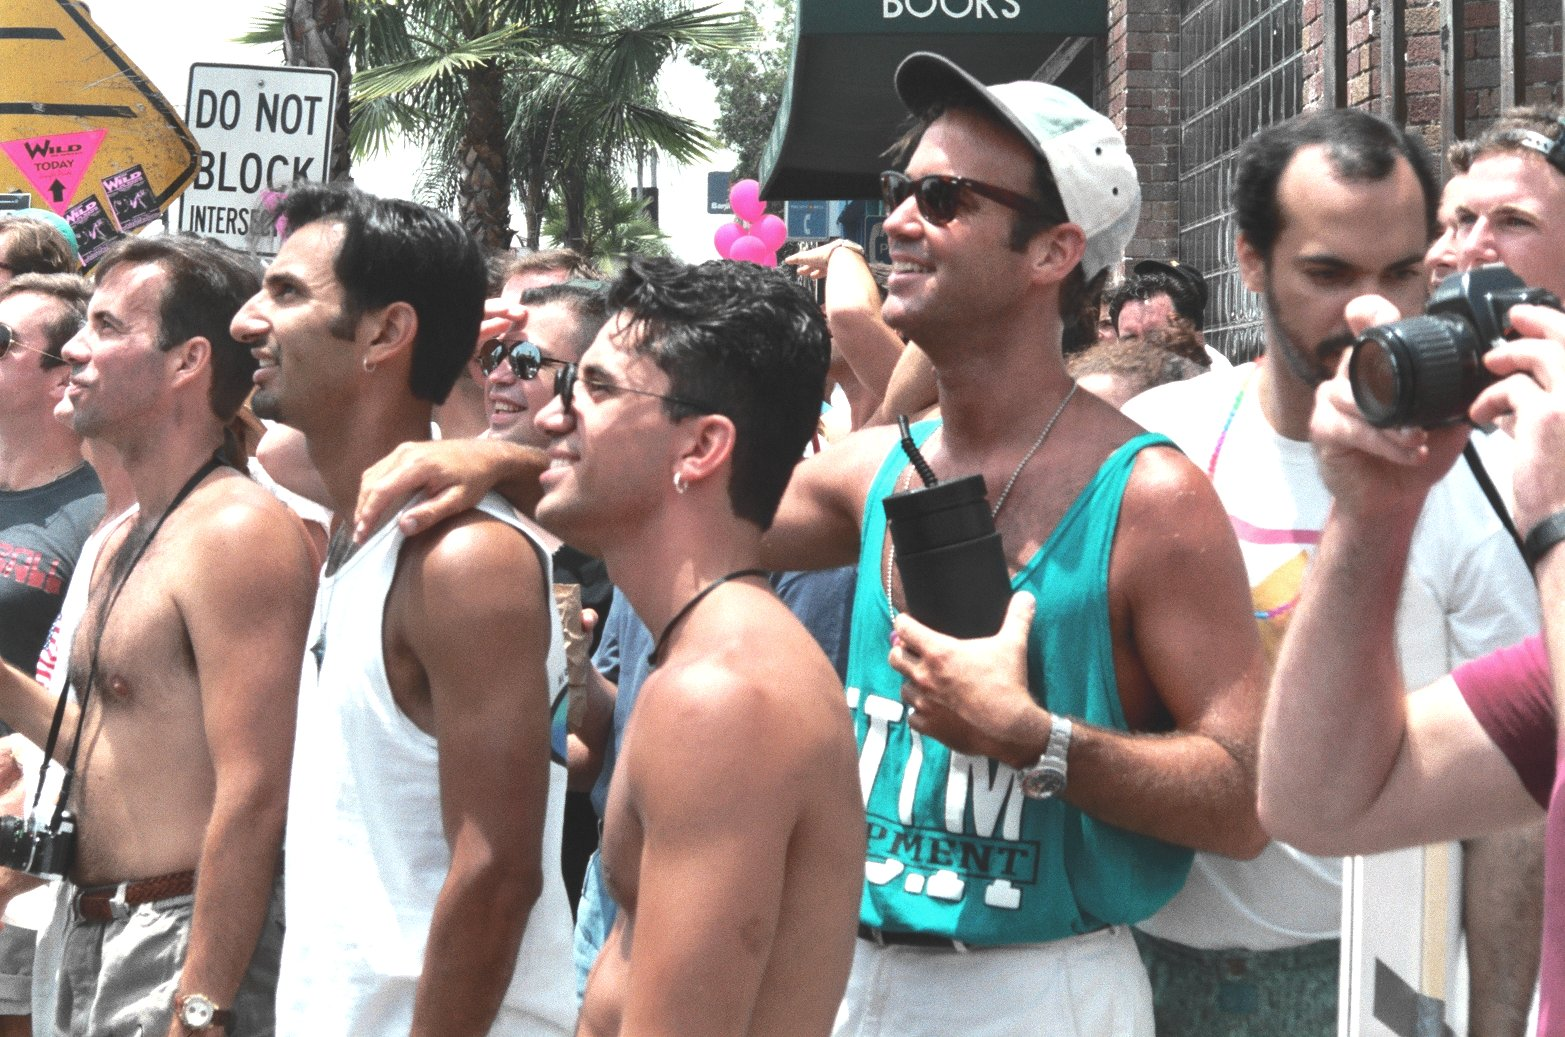 single gay men in los angeles There are plenty of them in la, but adding the requirements of nice, stable and  normal make it a tough answer a city of dreams, you'll find thousands of.